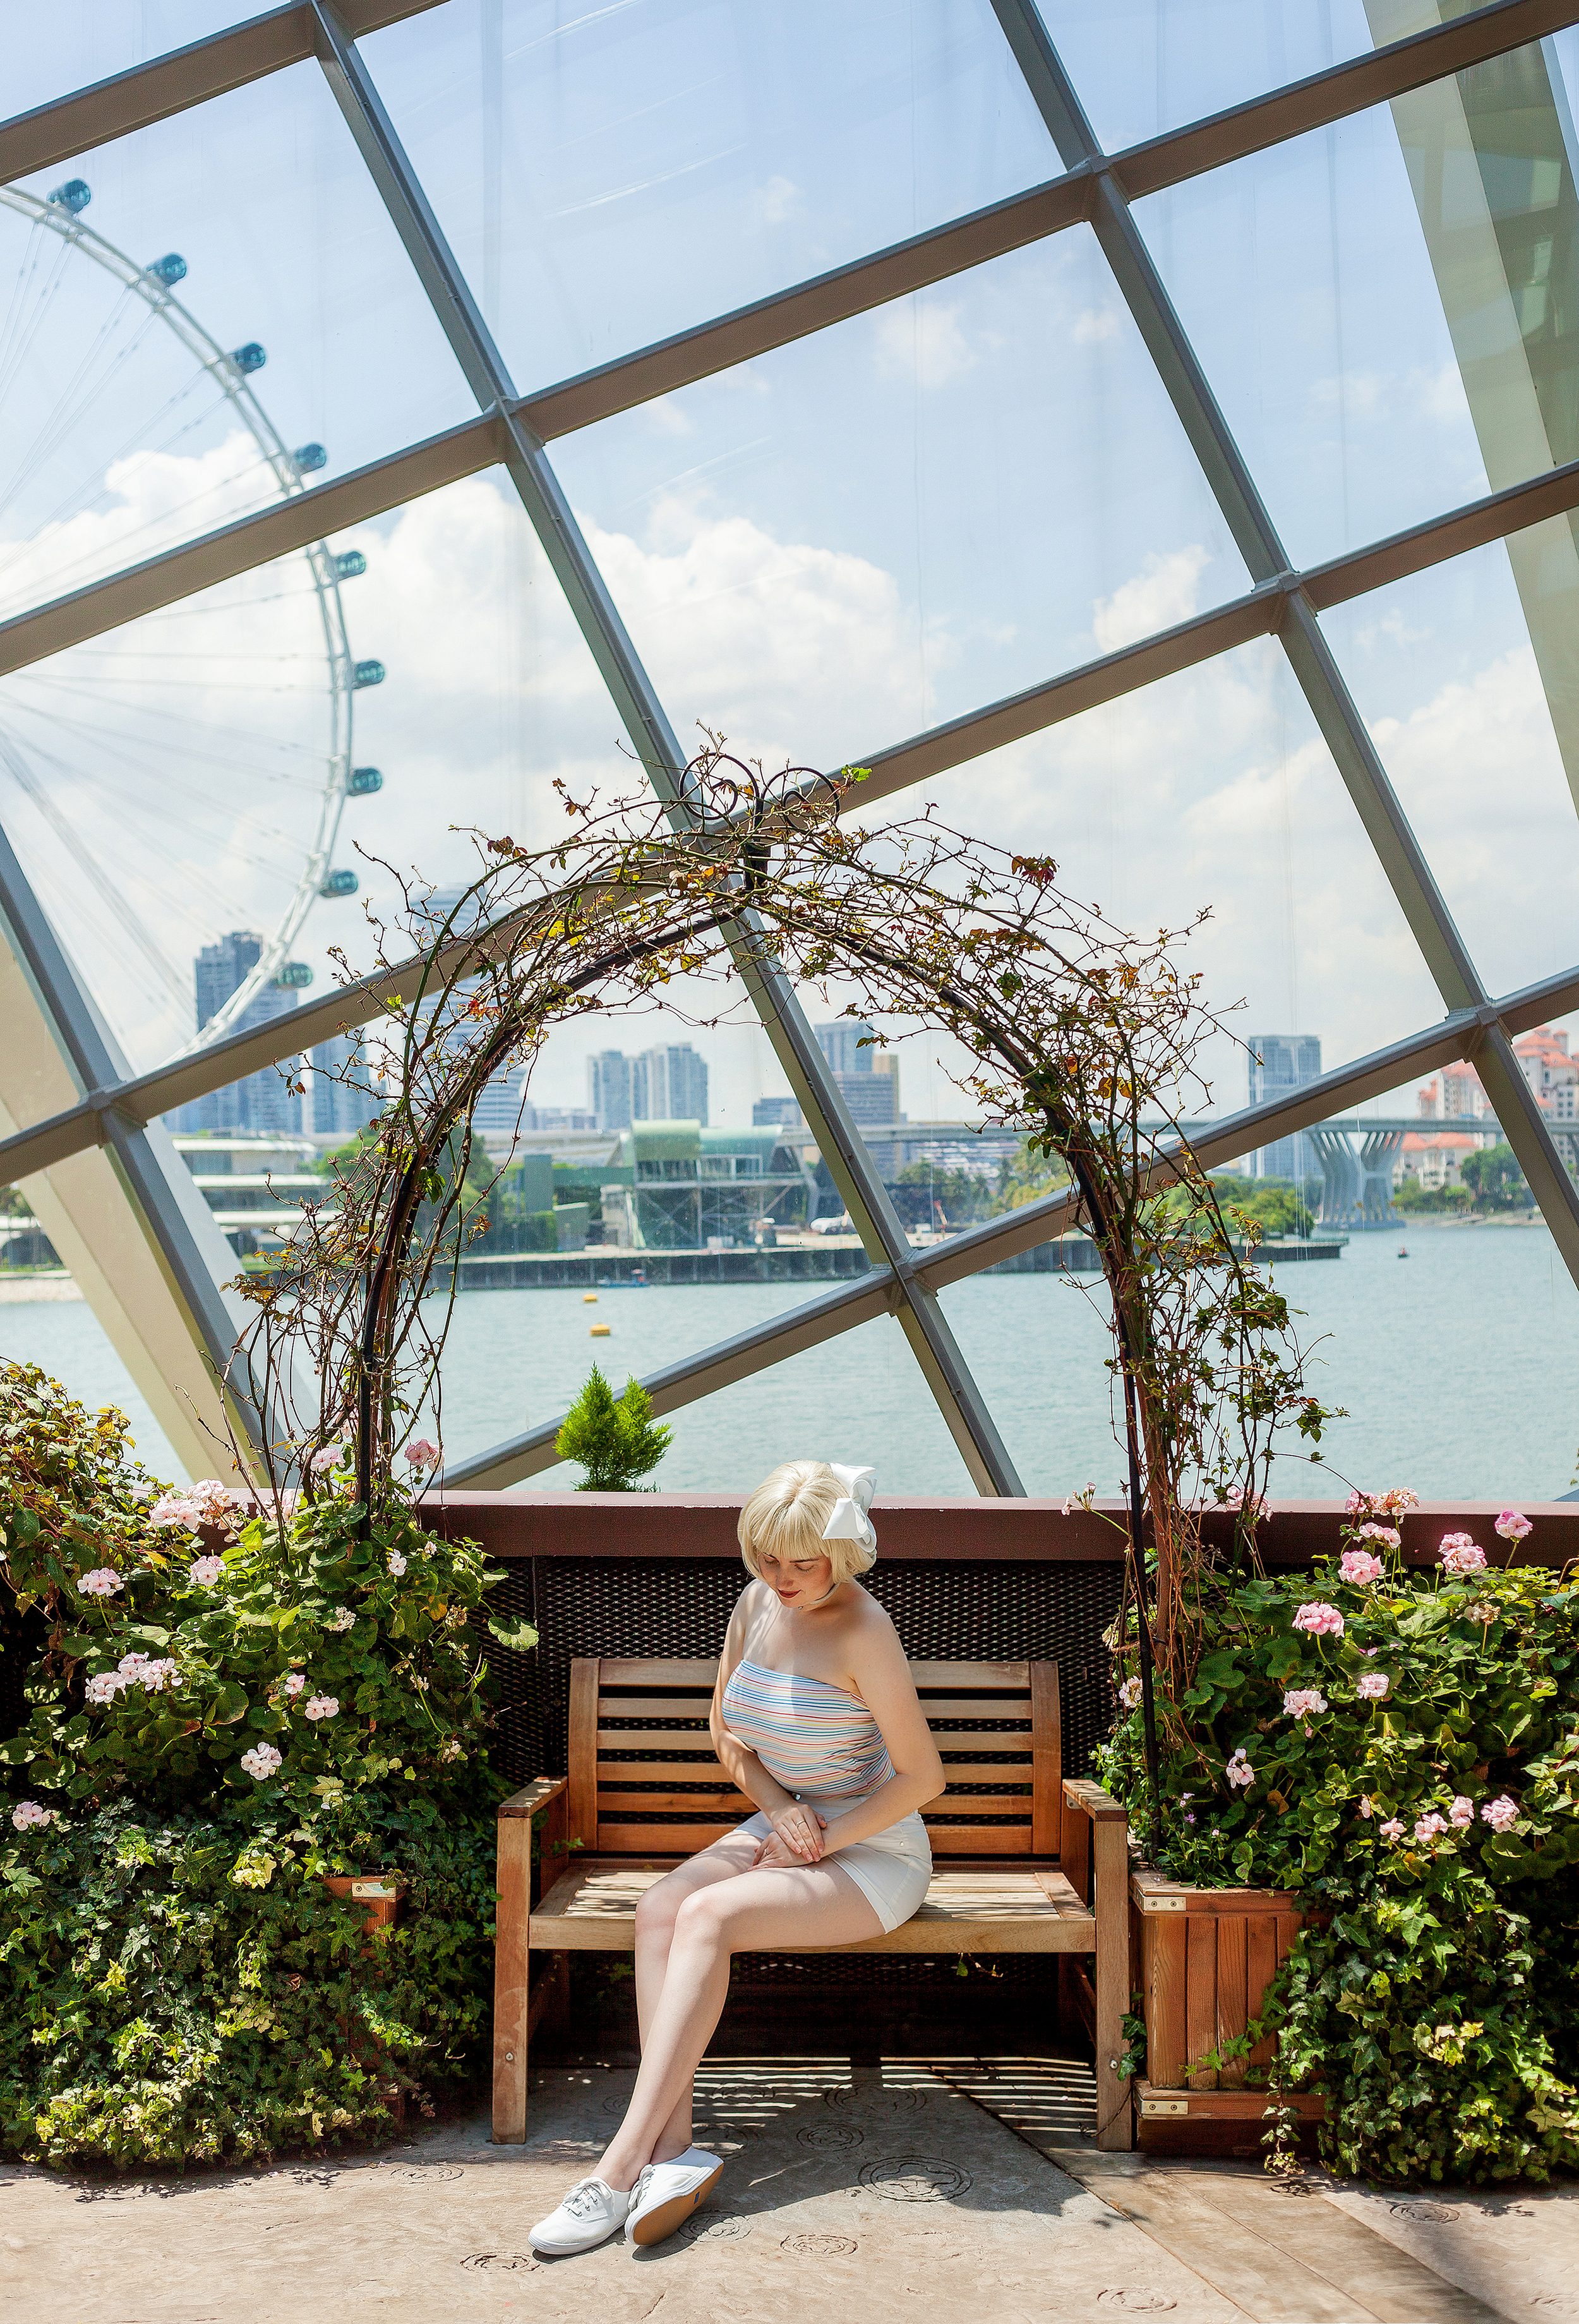 Gardens by the Bay, the Flower Dome. Singapore. Wearing top from Factorie, Bow from Lovisa, Choker from Veronica B, Shoes from Hannahs, and Shorts from Jay Jays.